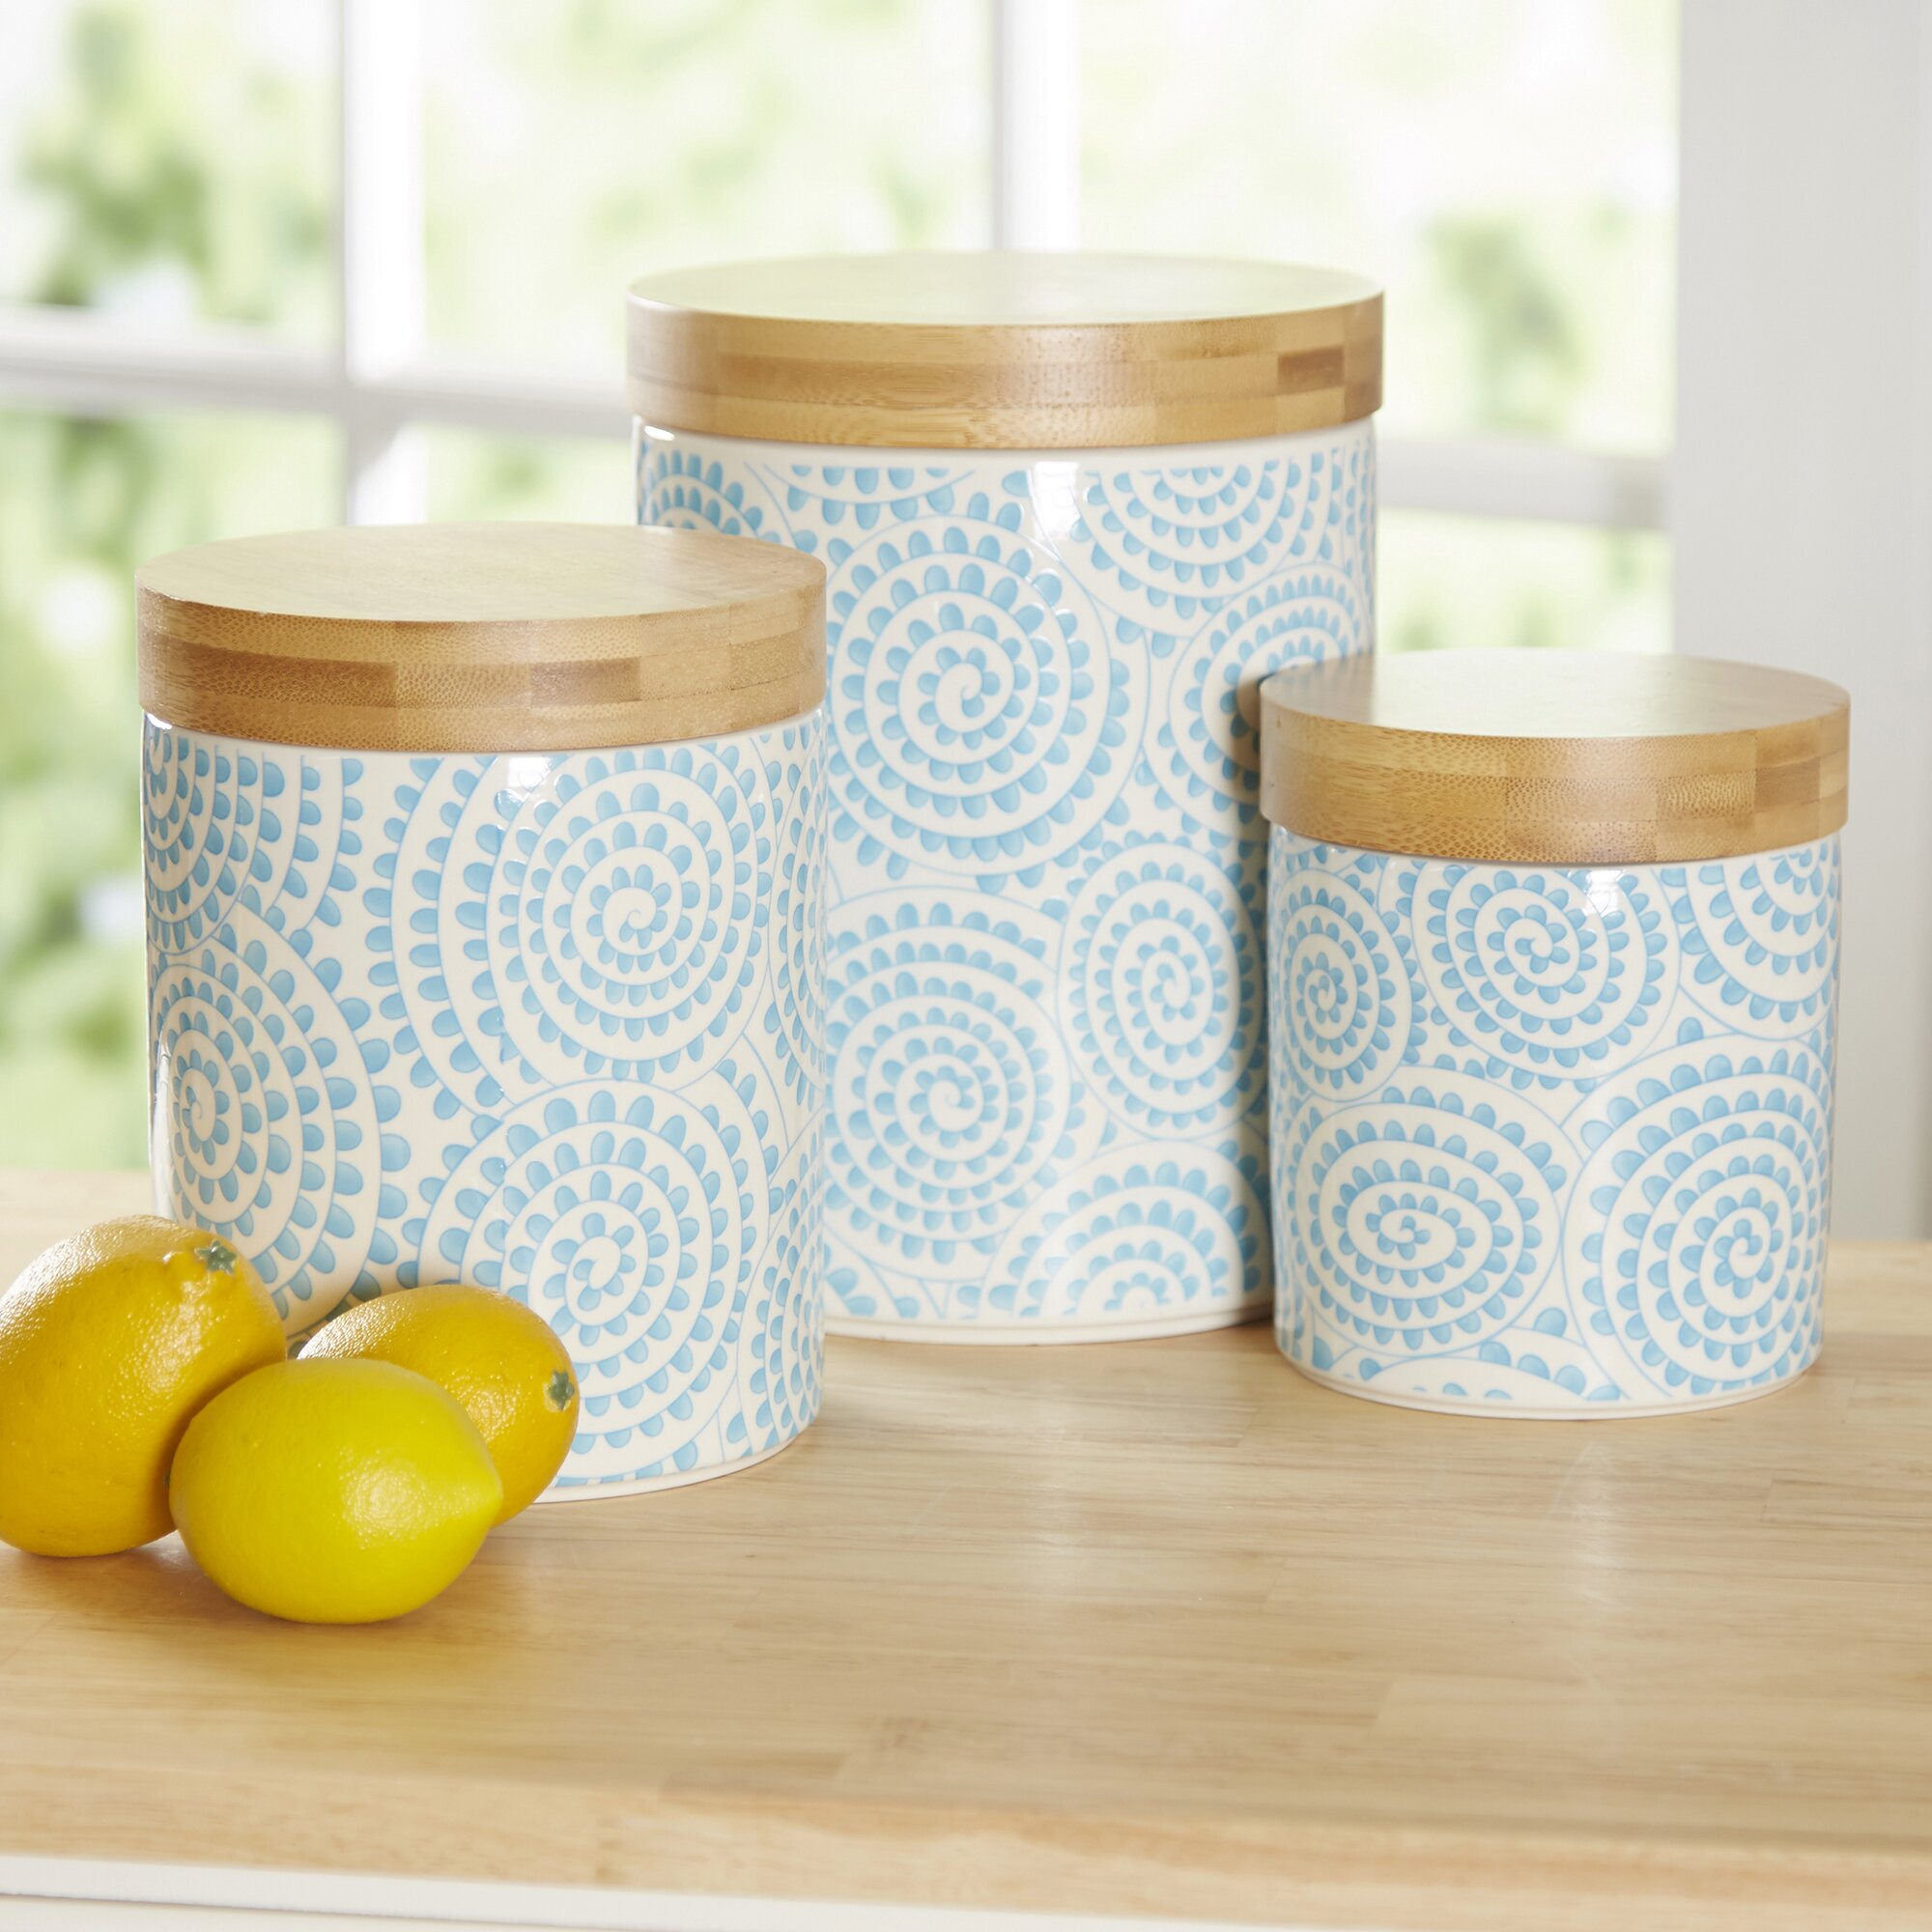 Birch Lanea Wilshire Piece Kitchen Canister Set Reviews Wayfair Wilshire Piece Kitchen Canister Set